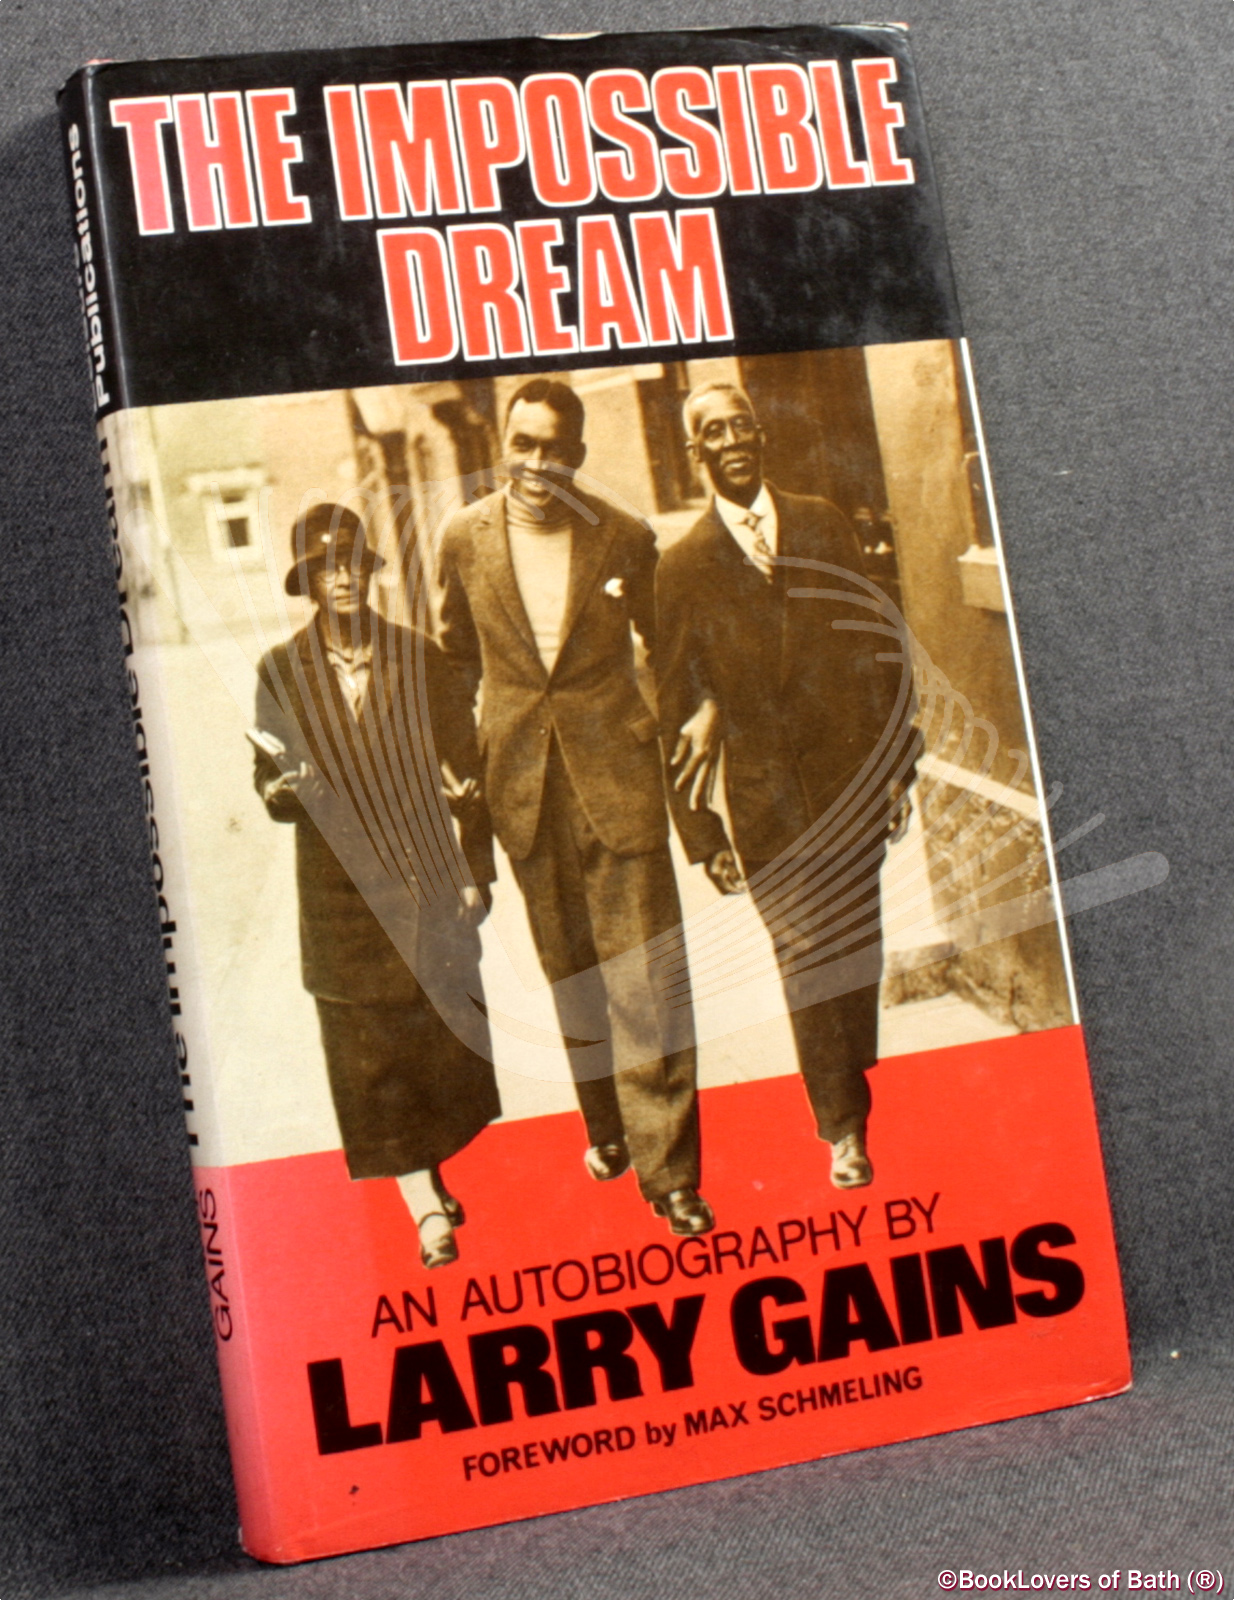 The Impossible Dream - Larry Gains